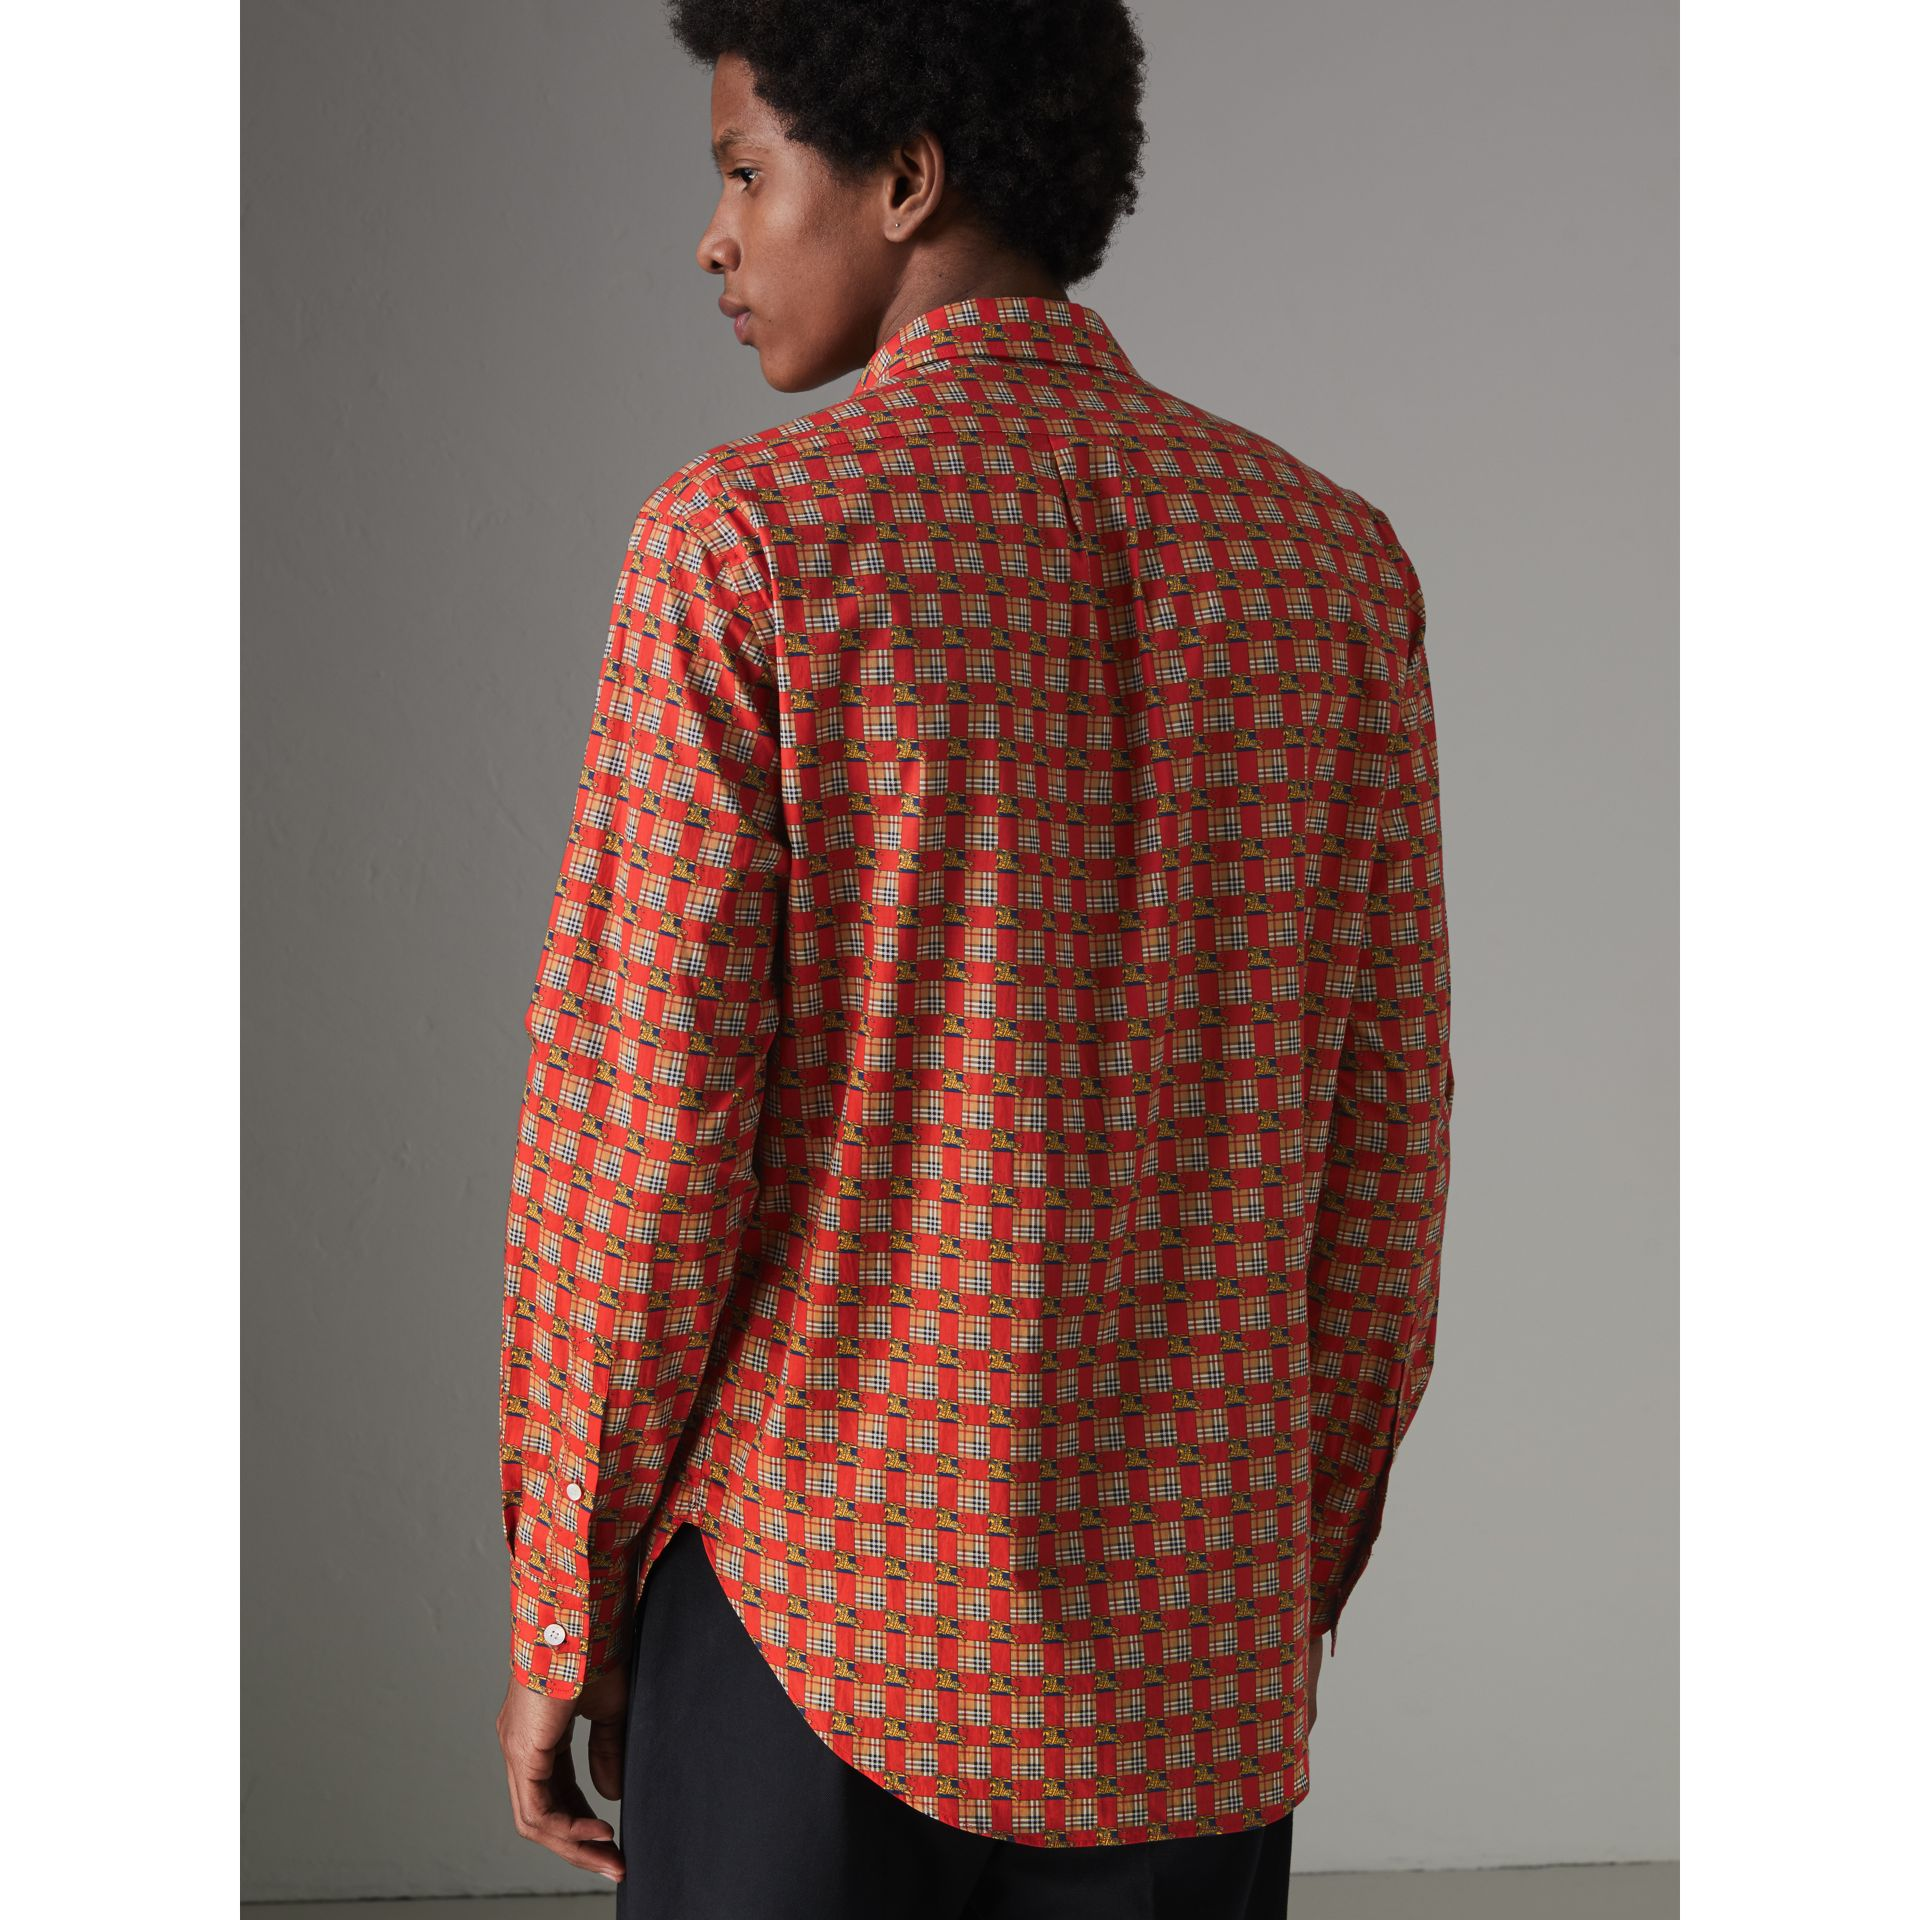 Tiled Archive Print Cotton Shirt in Bright Red - Men | Burberry Canada - gallery image 2